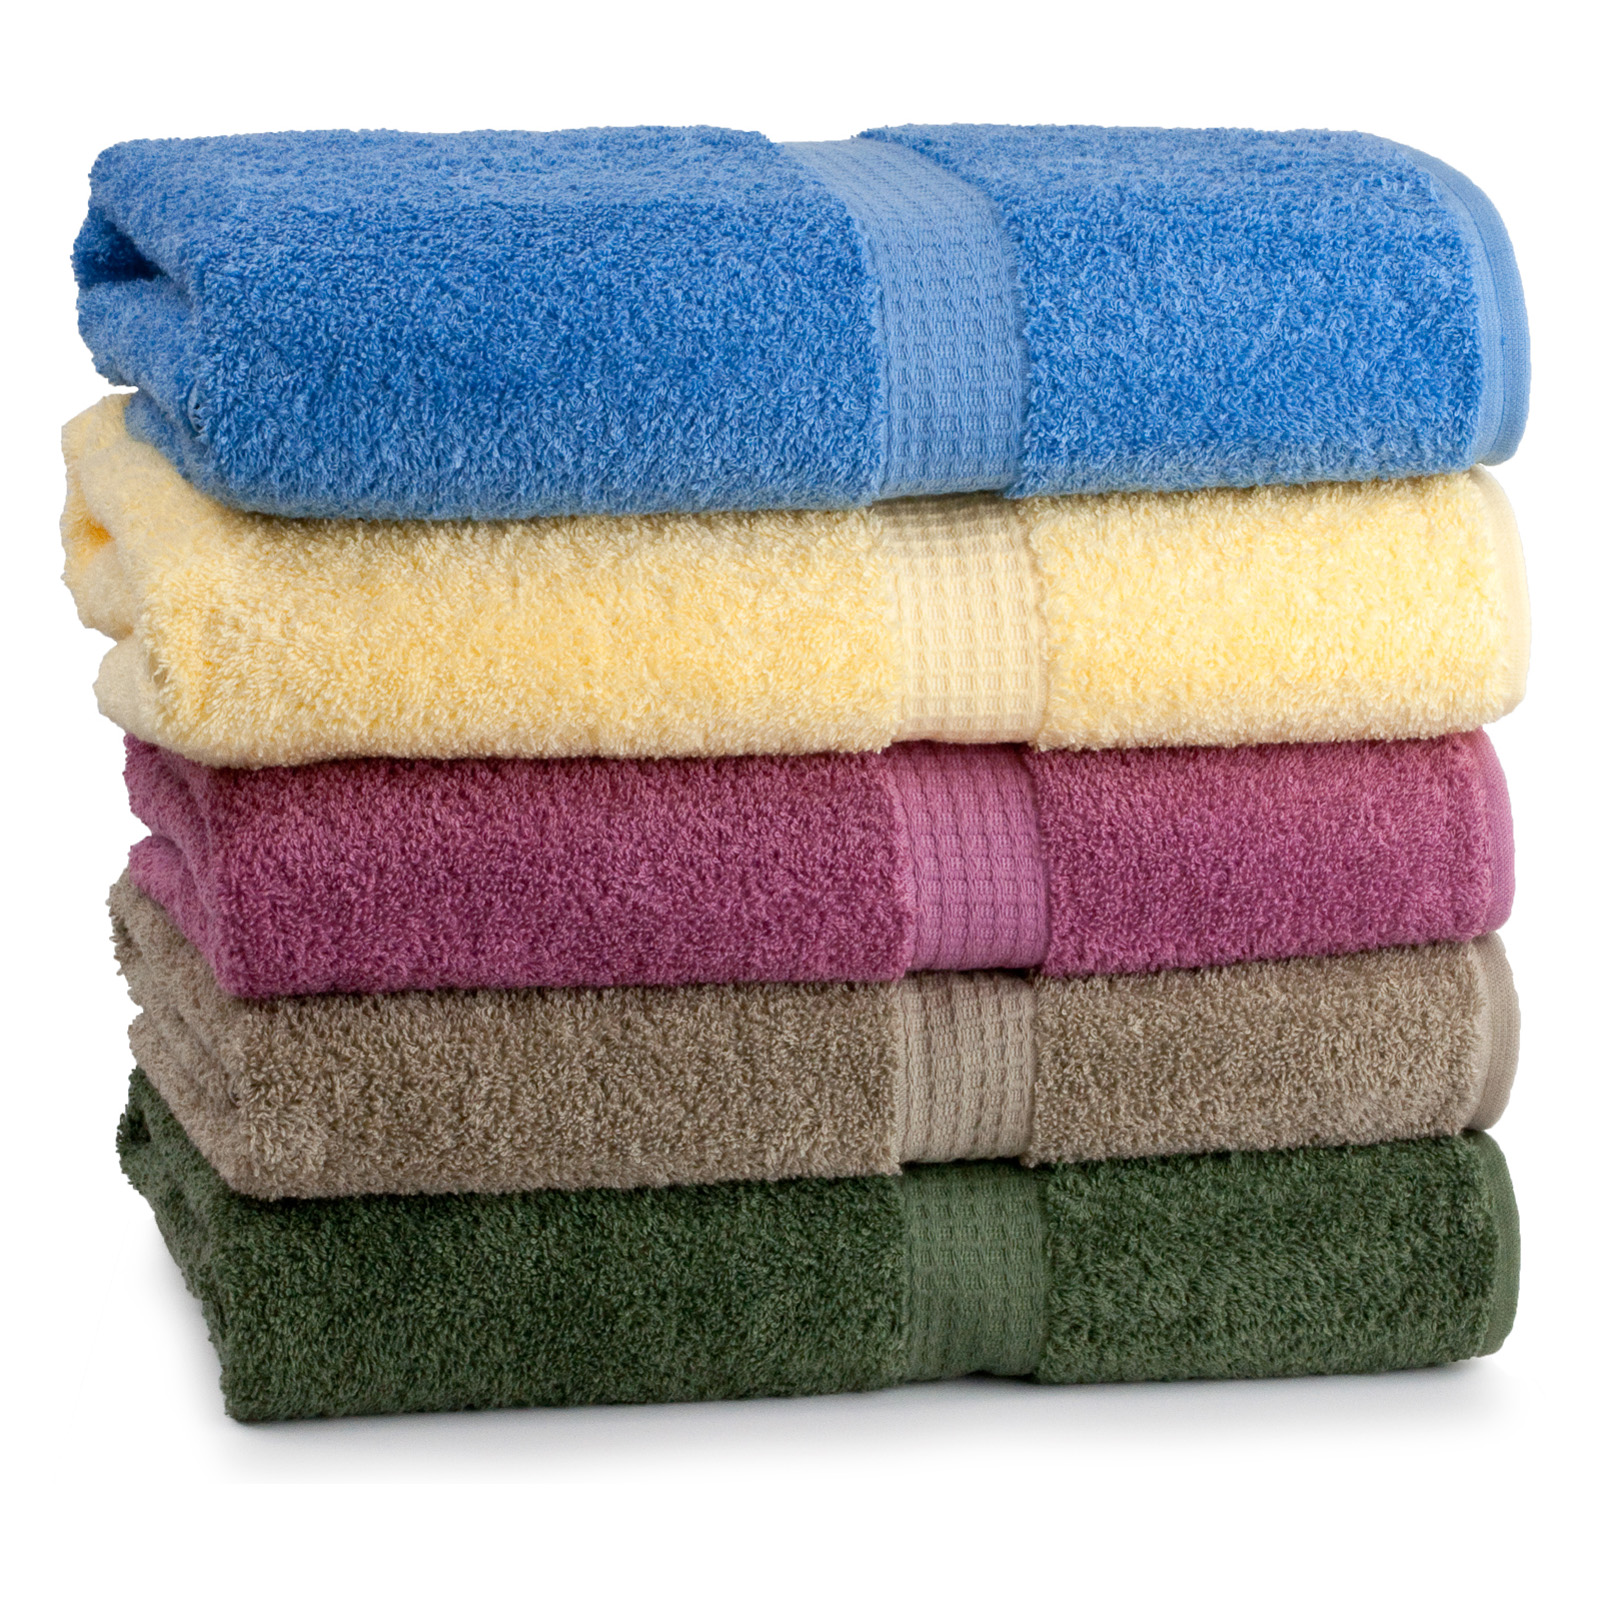 Labor Day Furniture Sale >> Cambridge Contessa 100% RingSpun Cotton Hand Towel/Washcloth at Hayneedle